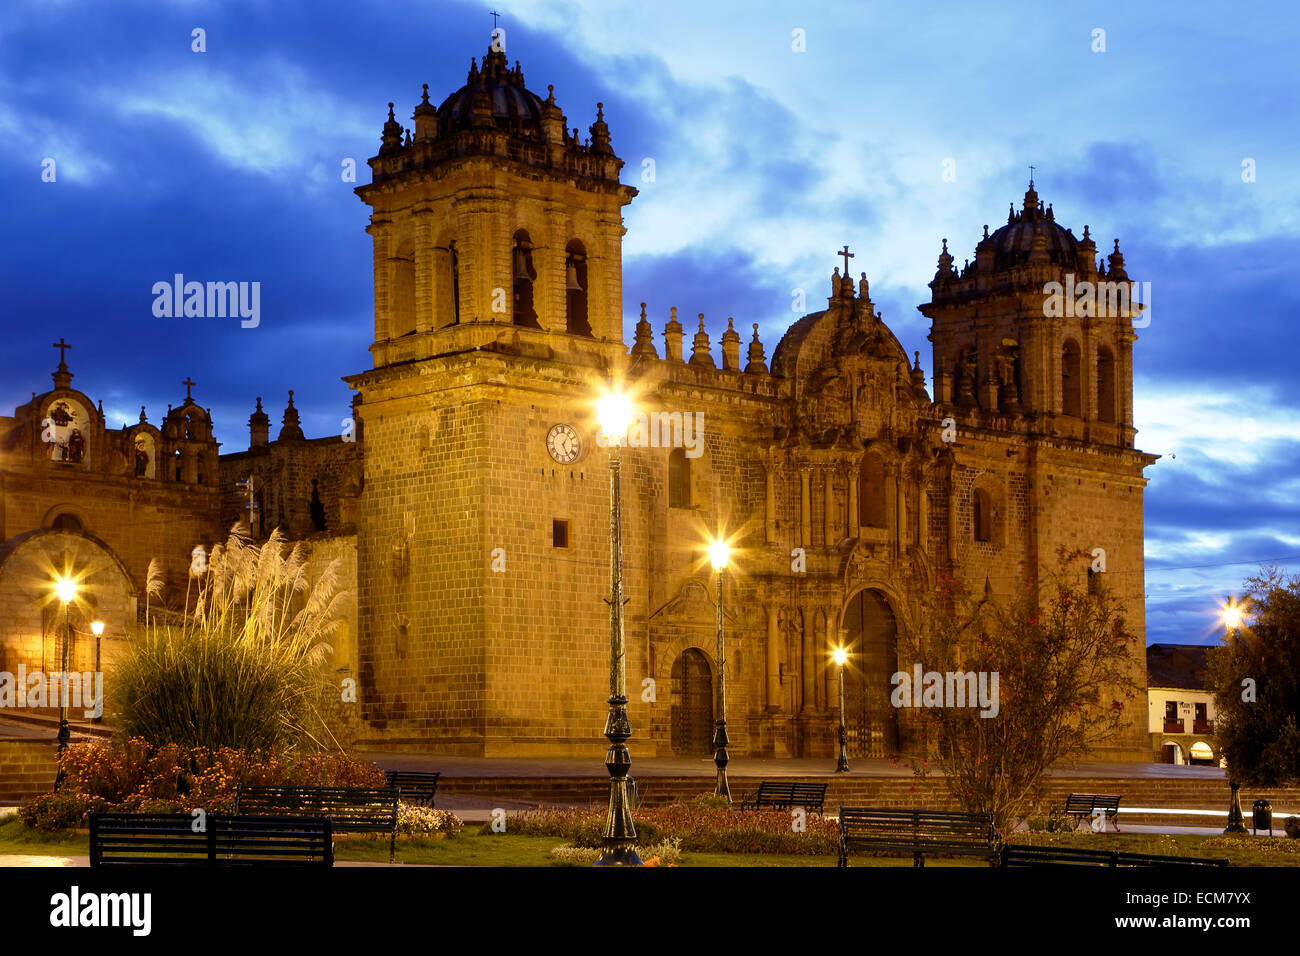 Cusco Cathedral (Nuestra Sra. de la Asuncion) and Plaza de Armas, Cusco, Peru - Stock Image